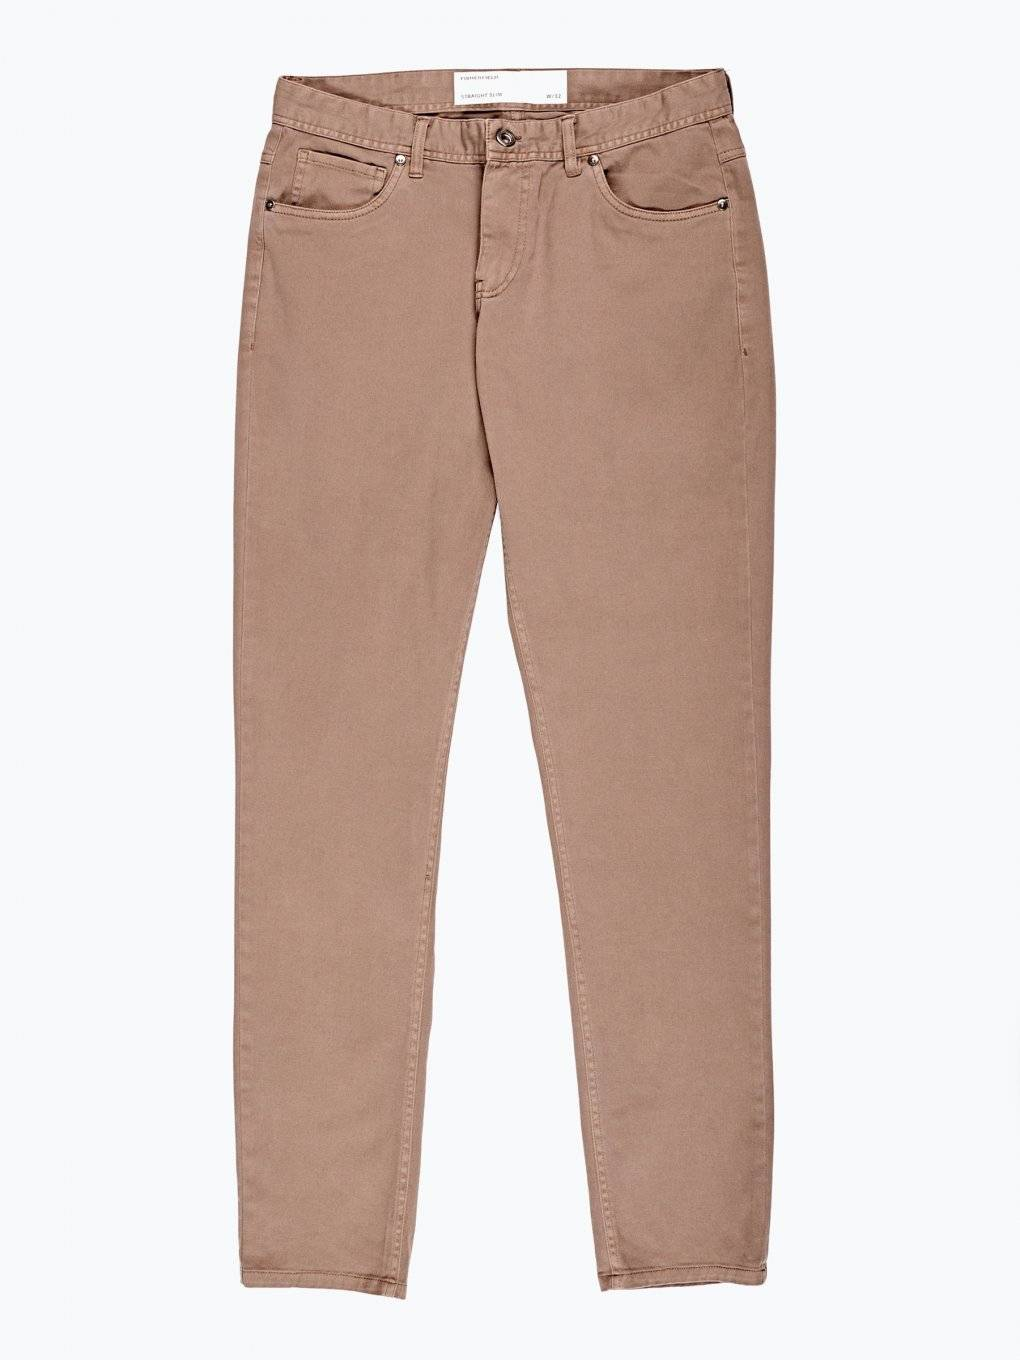 Basic straight slim fit stretch trousers